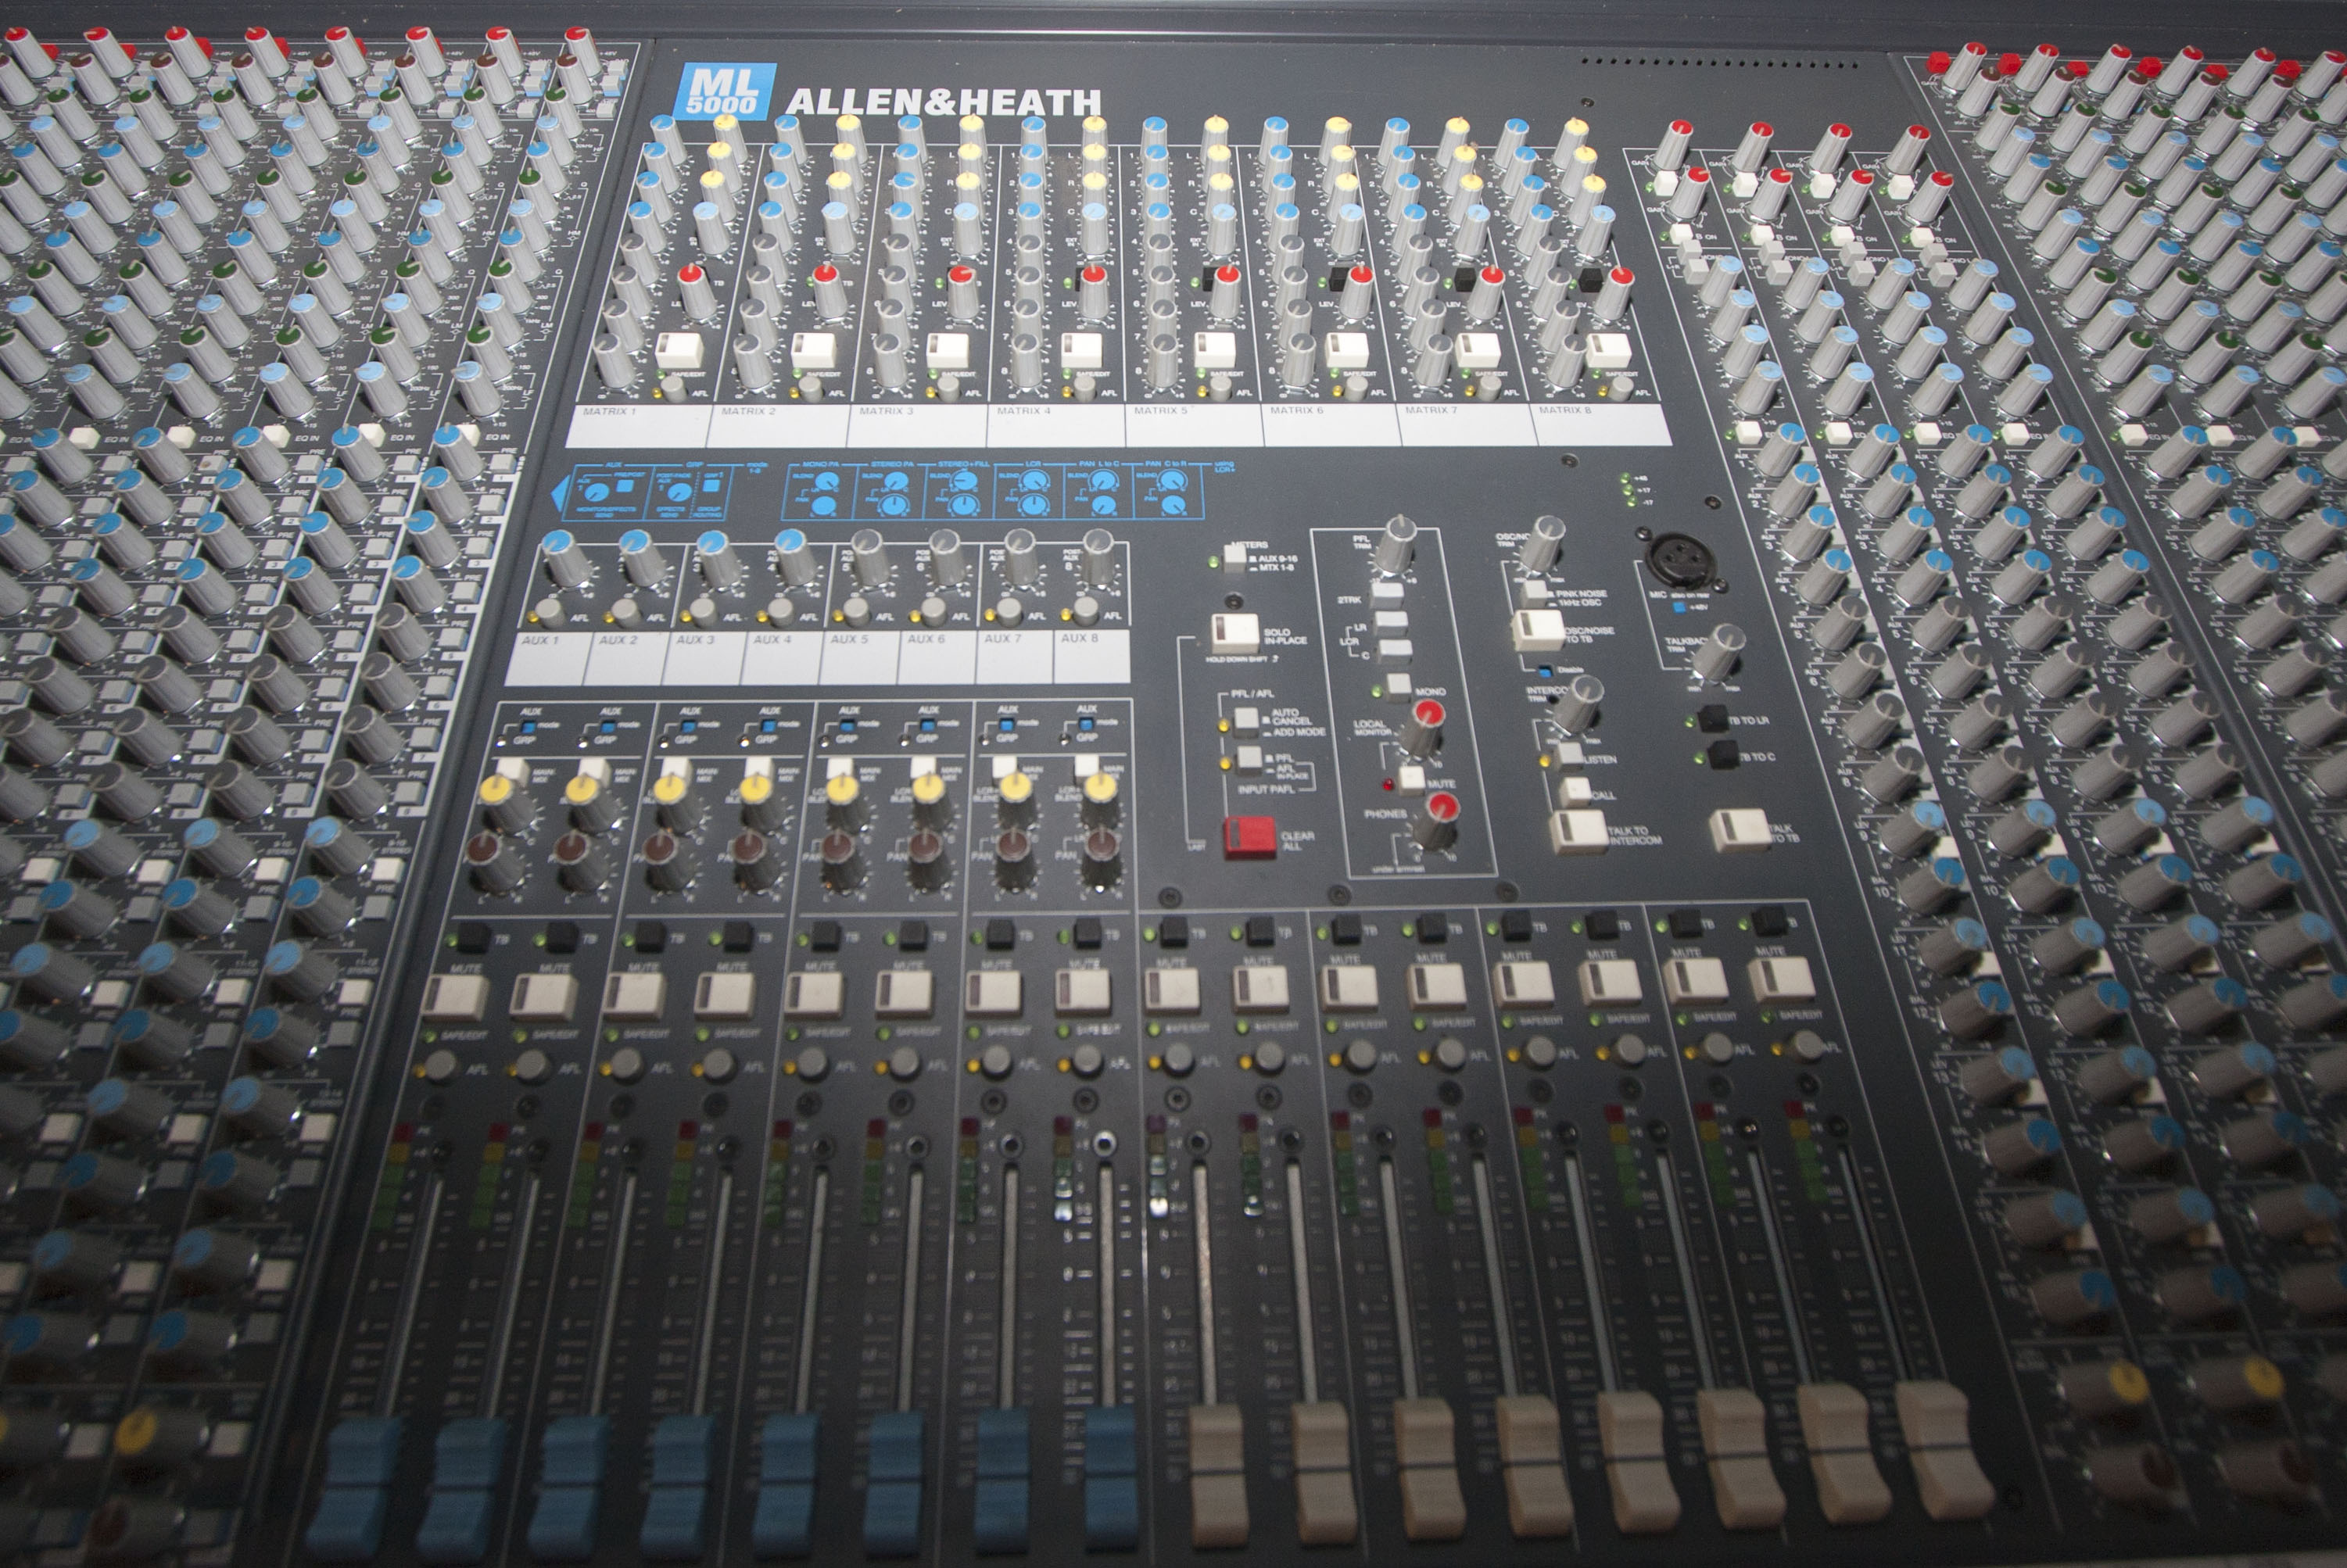 Allen&Heath ML5000